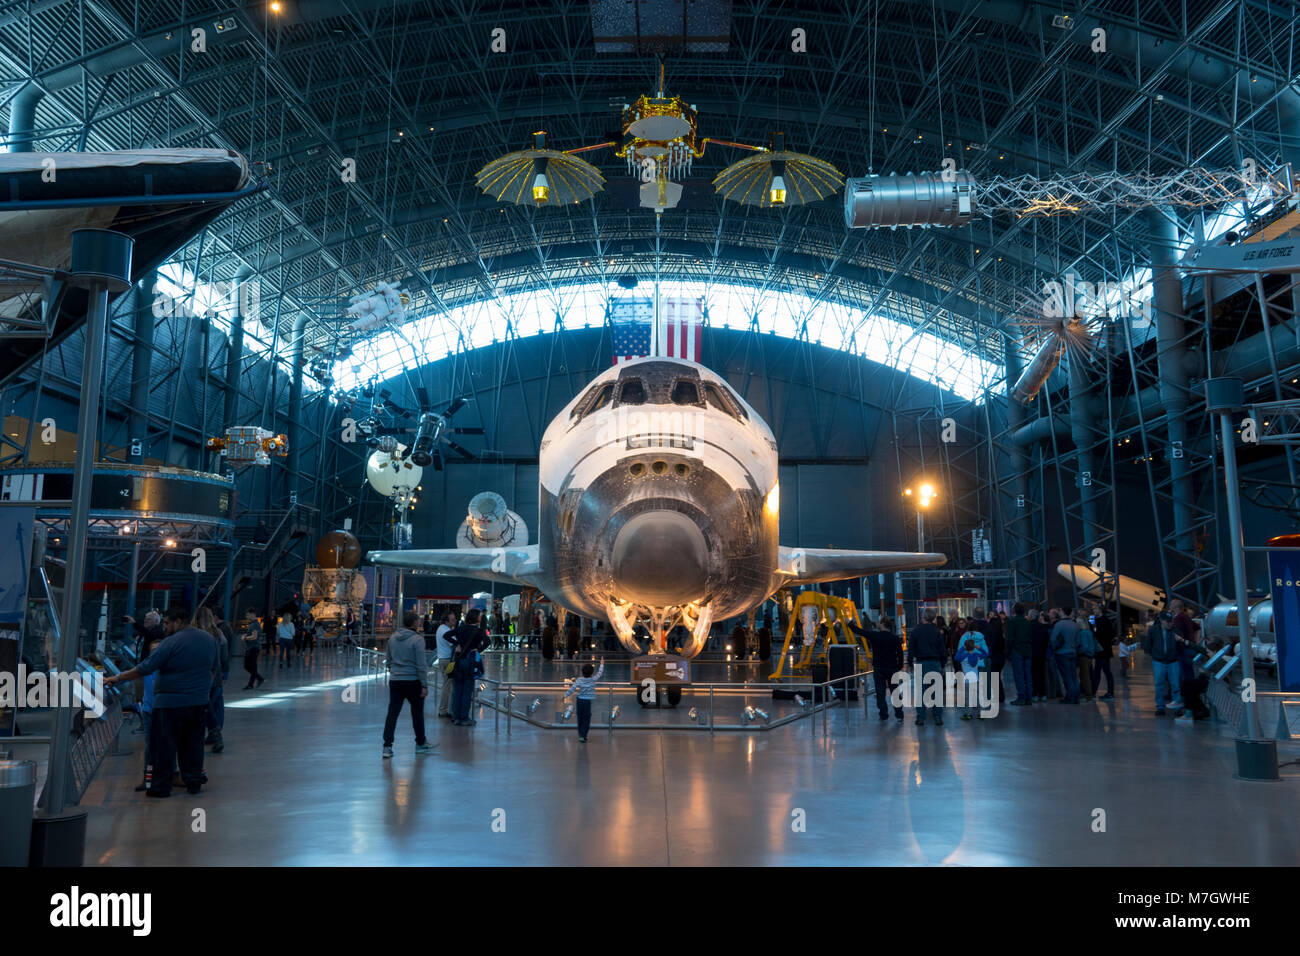 Steven F. Udvar-Hazy Center Smithsonian National Air and Space Museum Chantilly Virginia VA Space Shuttle Discovery - Stock Image